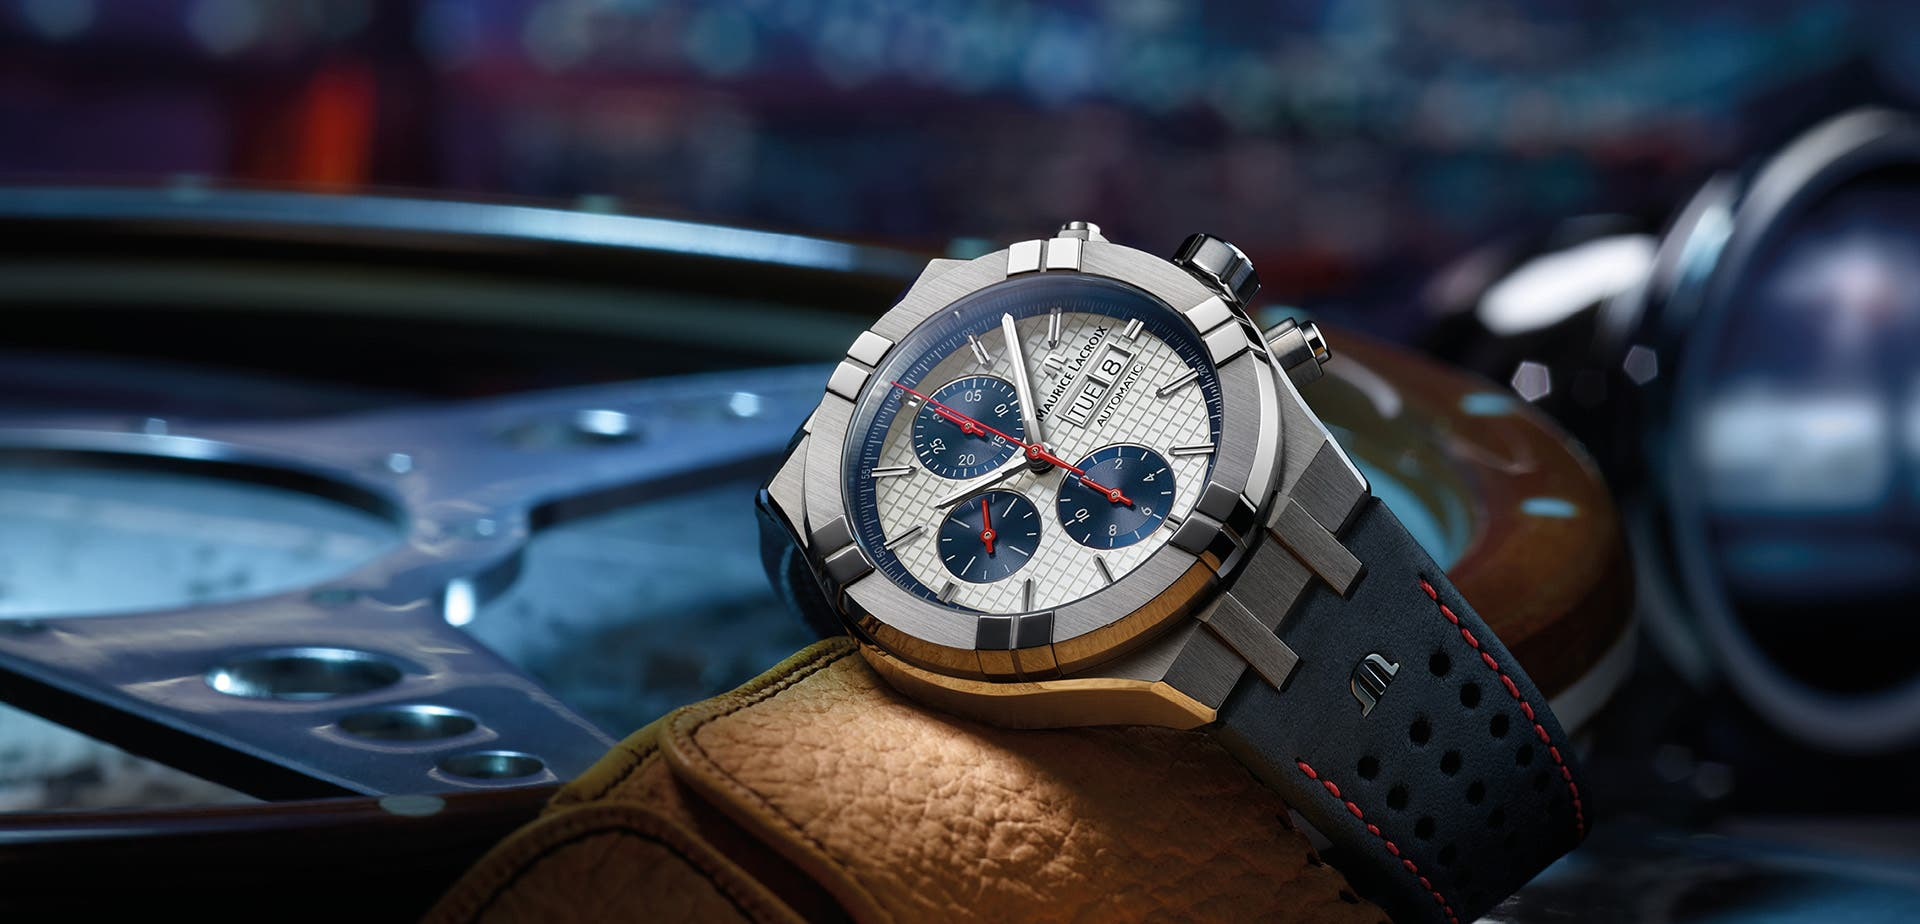 AIKON AUTOMATIC CHRONOGRAPH LIMITED EDITION 0678eac4284